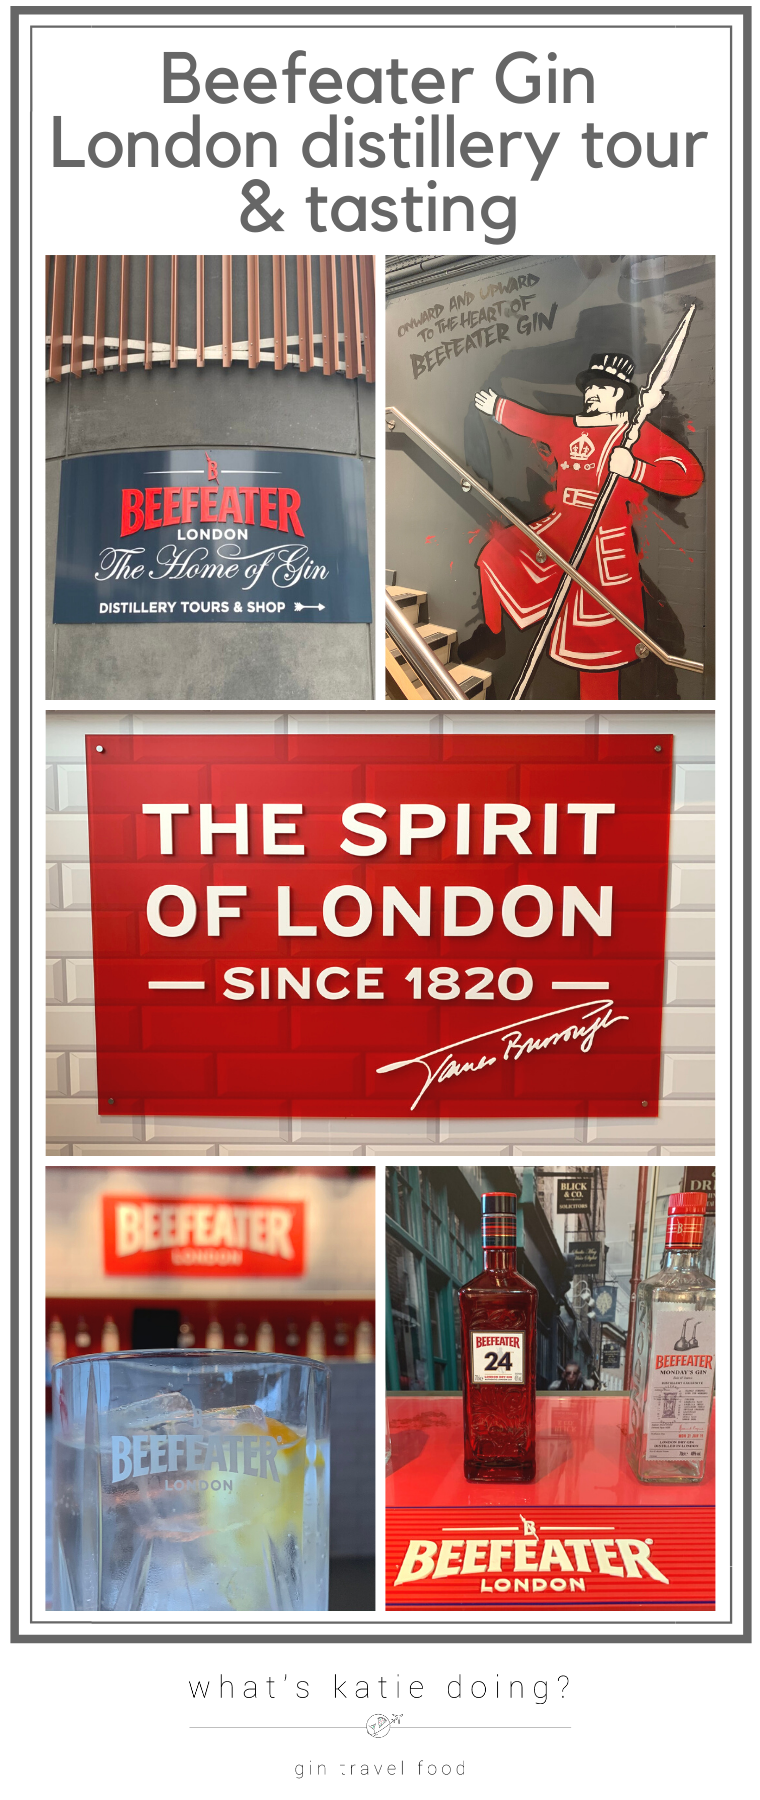 Beefeater gin tour - a London distillery tour and tasting